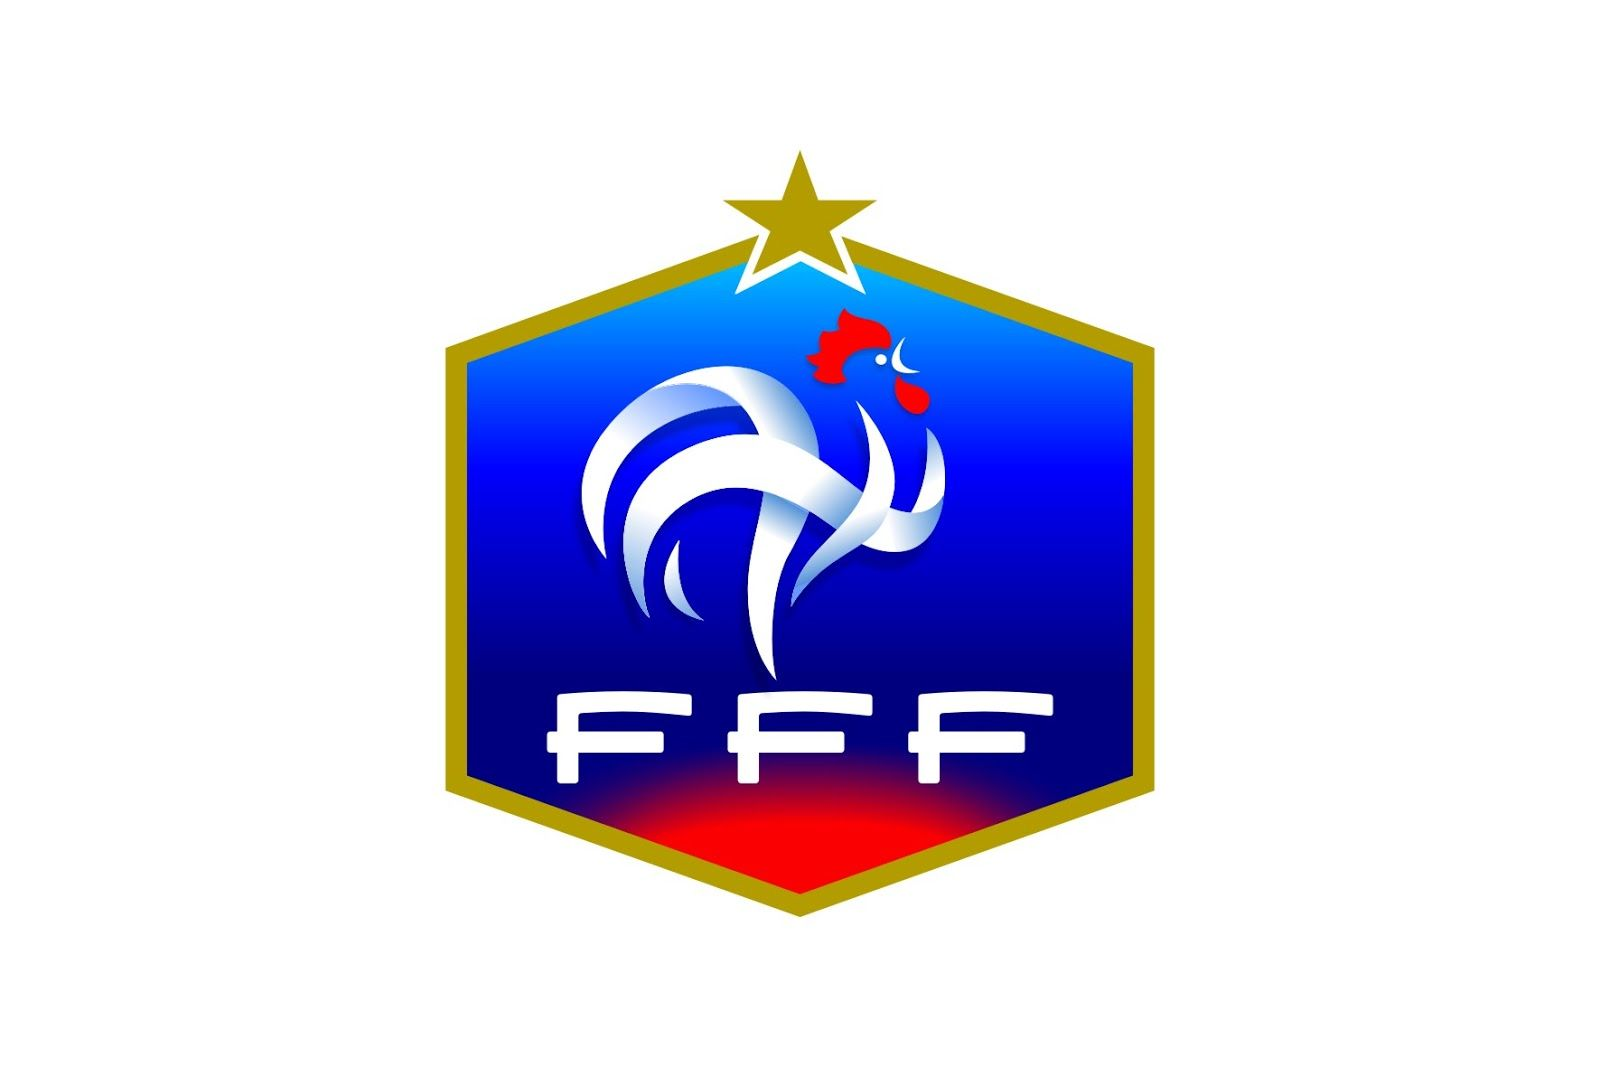 French football federation france national team logo symbols le nouveau logo fff france national football team wikipedia the free encyclopedia biocorpaavc Choice Image